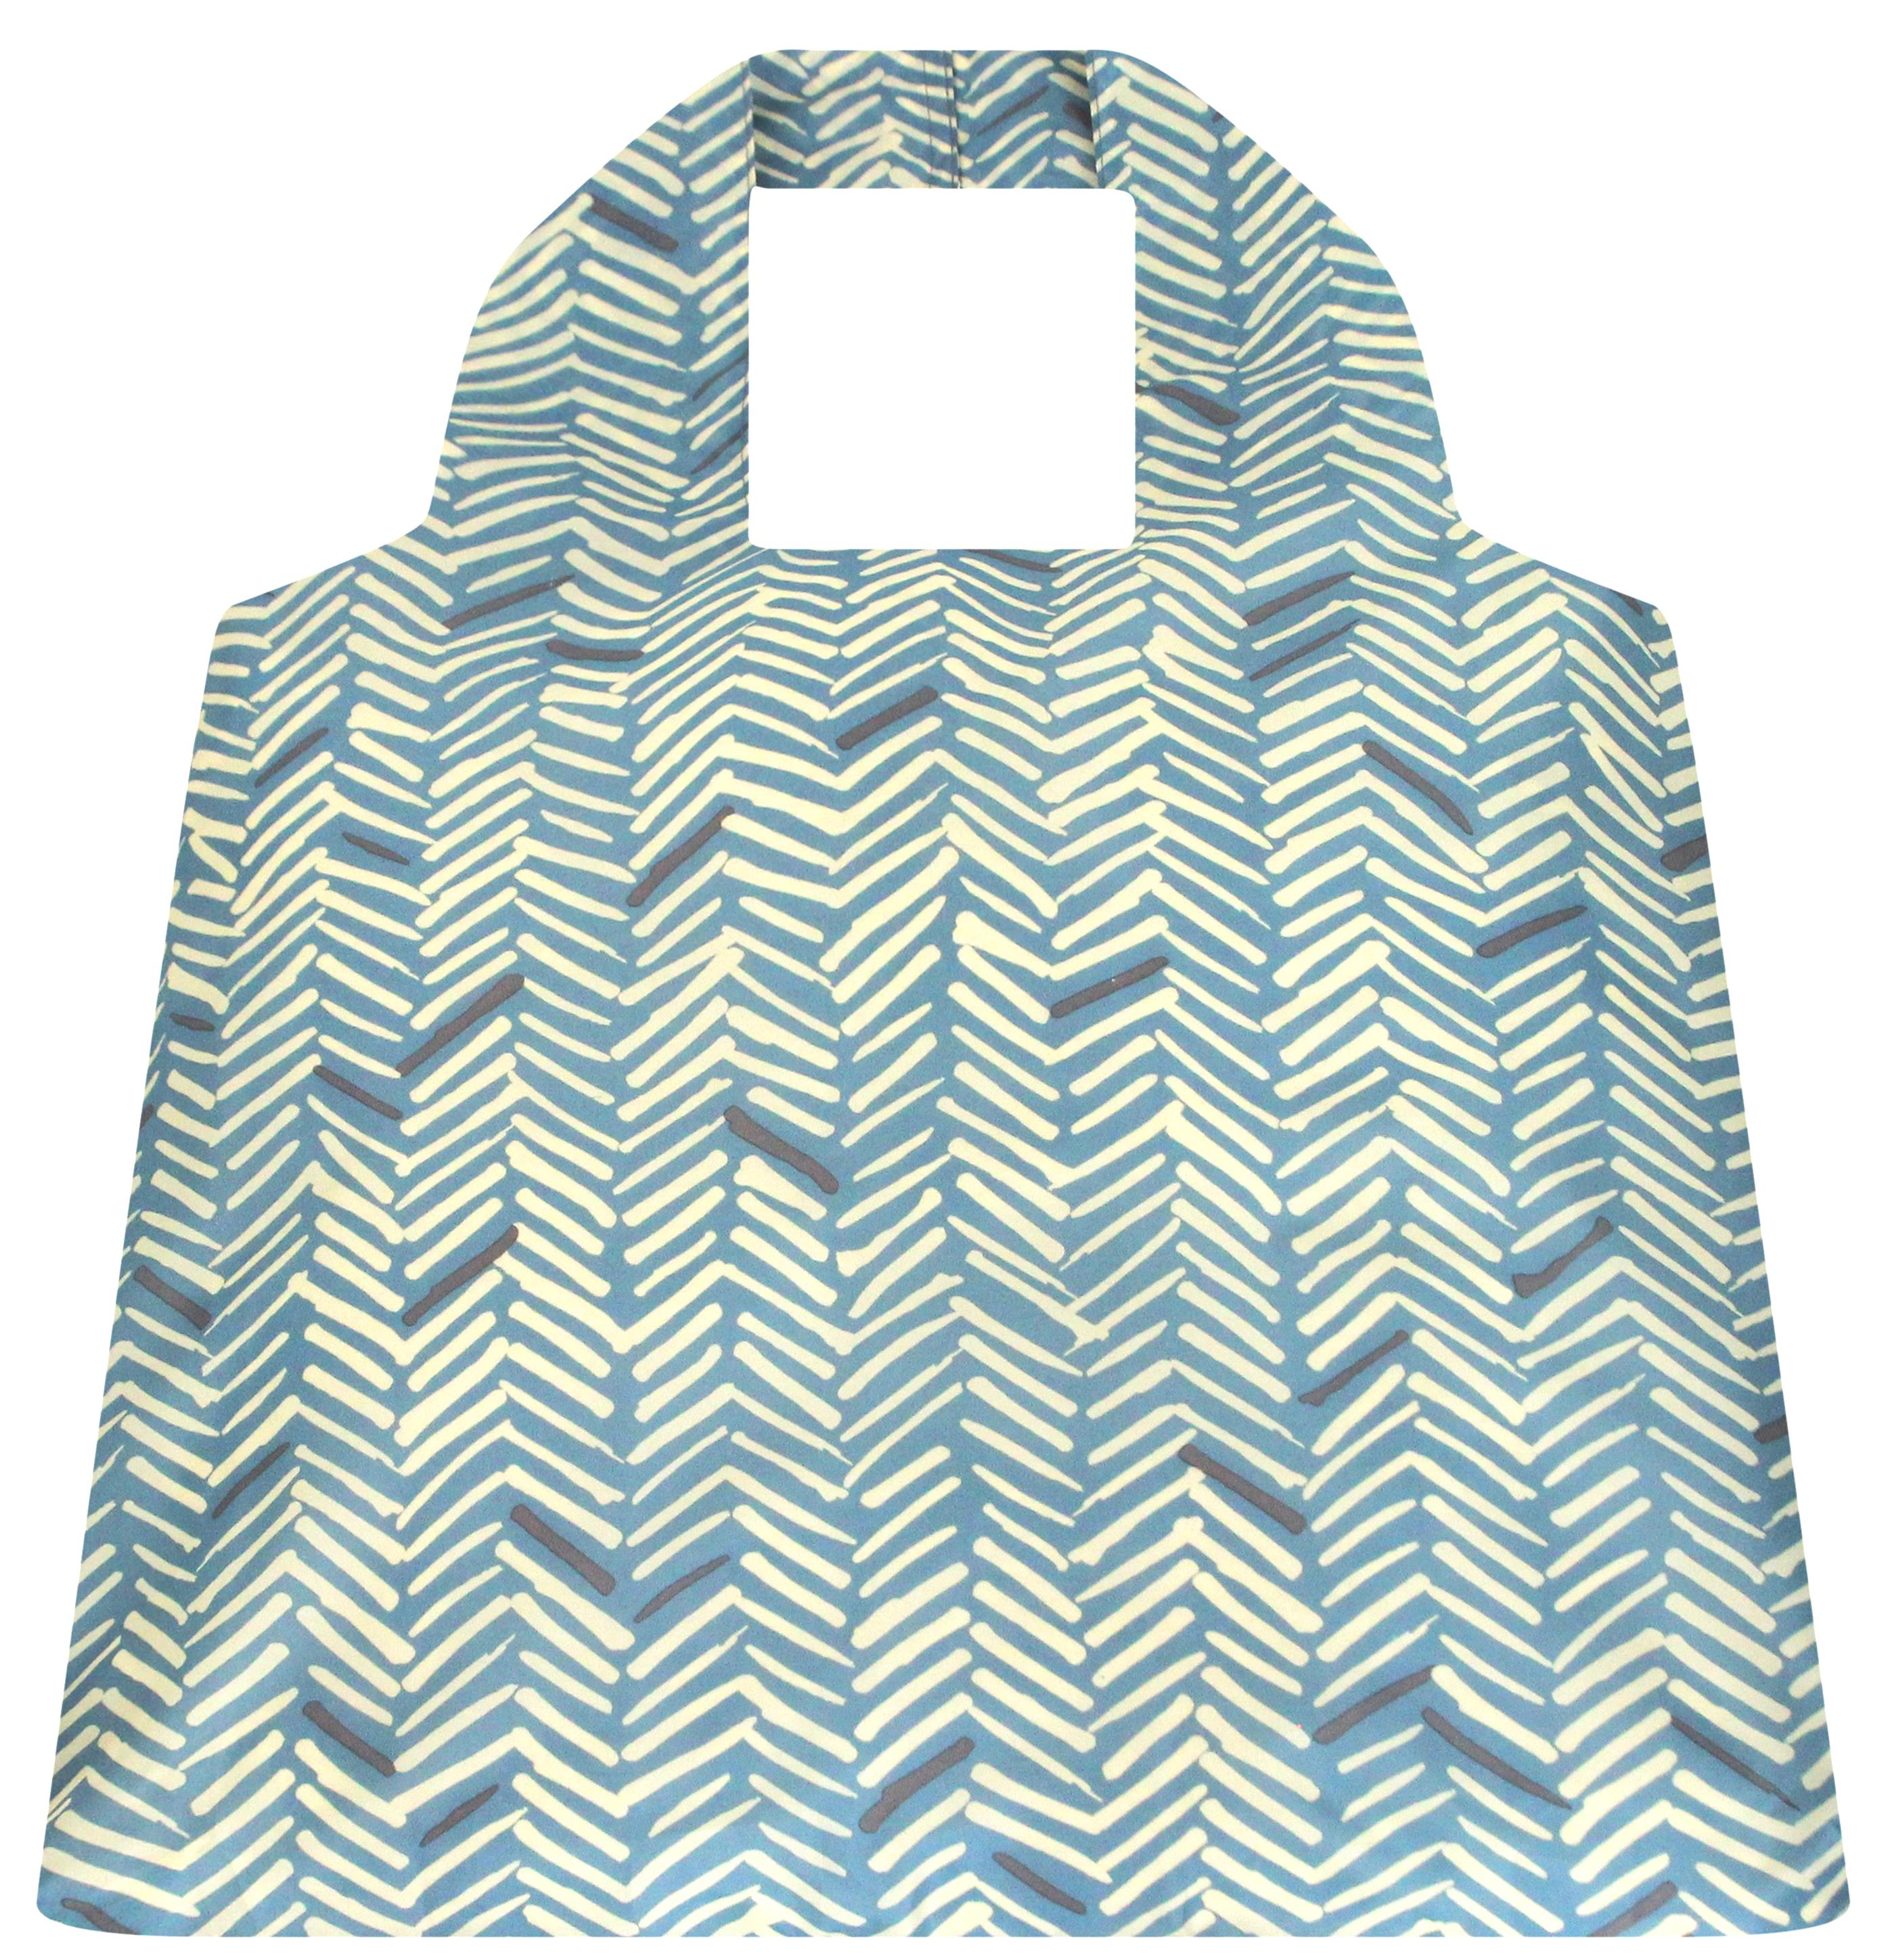 SAKitToMe ~ Herringbone Blue Design ~ Compact Bag by Envirotrend